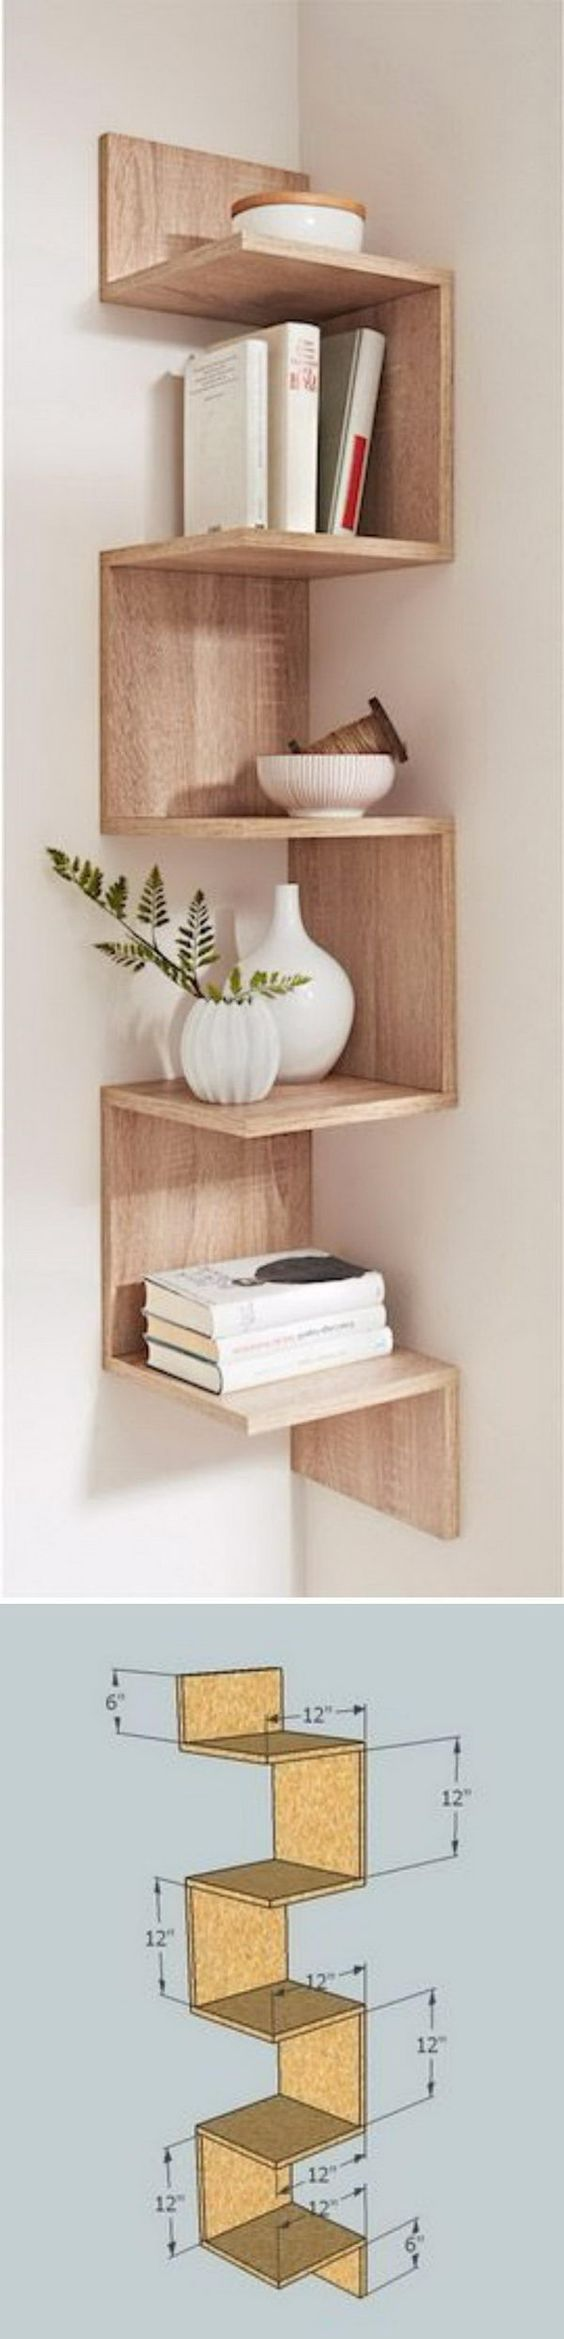 Best 25 diy shelving ideas on pinterest wall shelves shelves and shelving ideas - Living room multi use shelf idea ...